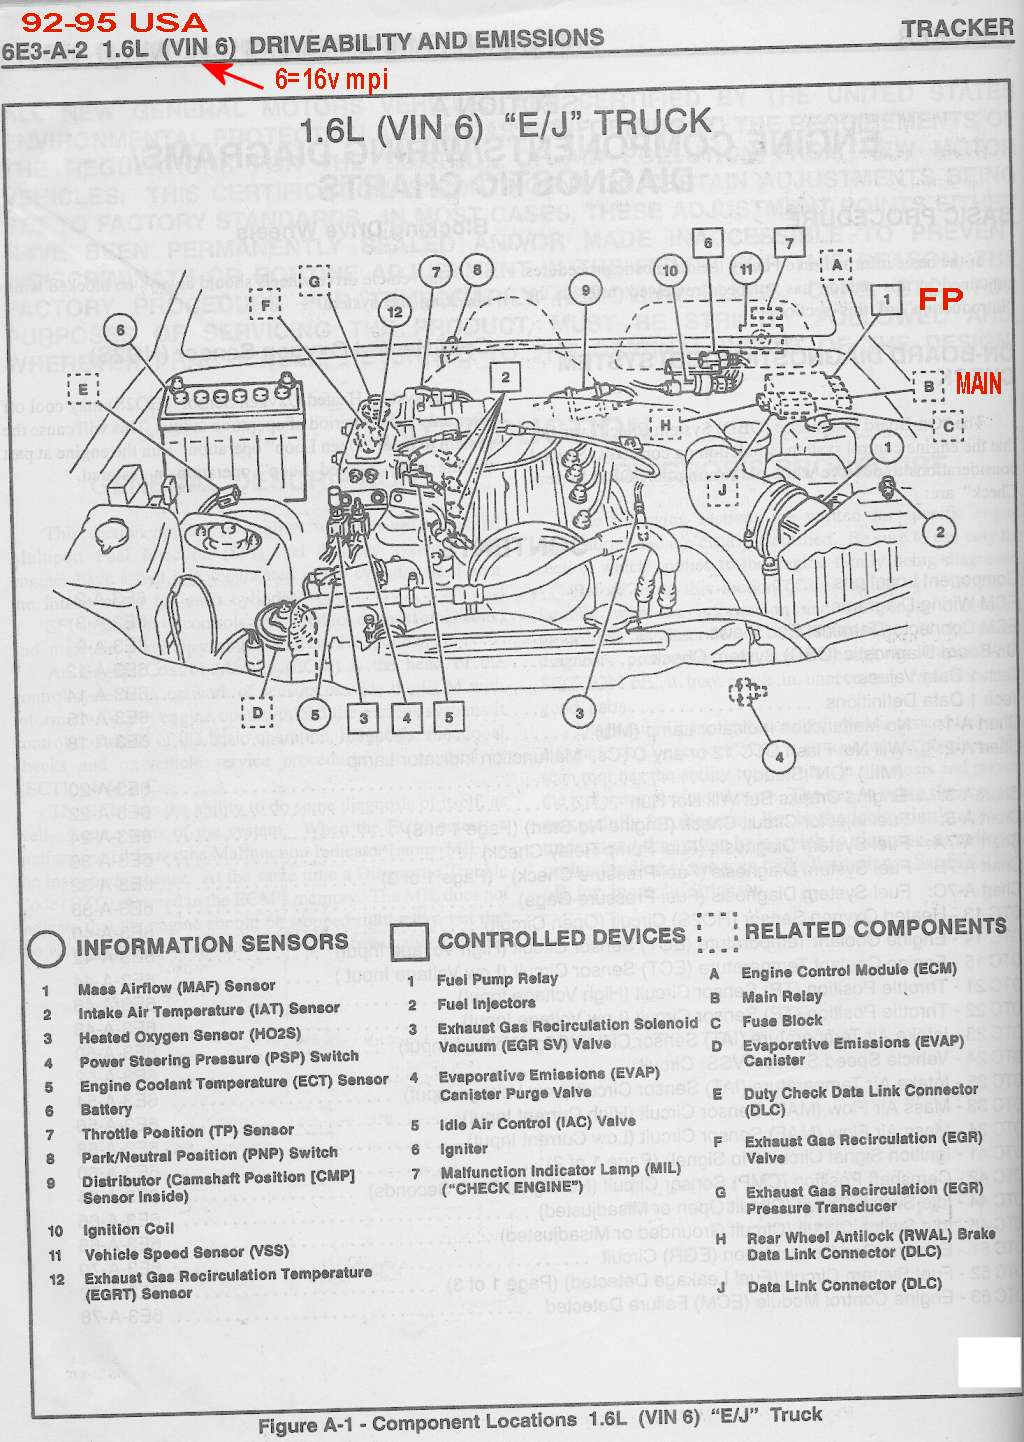 1996 Geo Prizm Fuse Box Diagram. Diagram. Auto Wiring Diagram